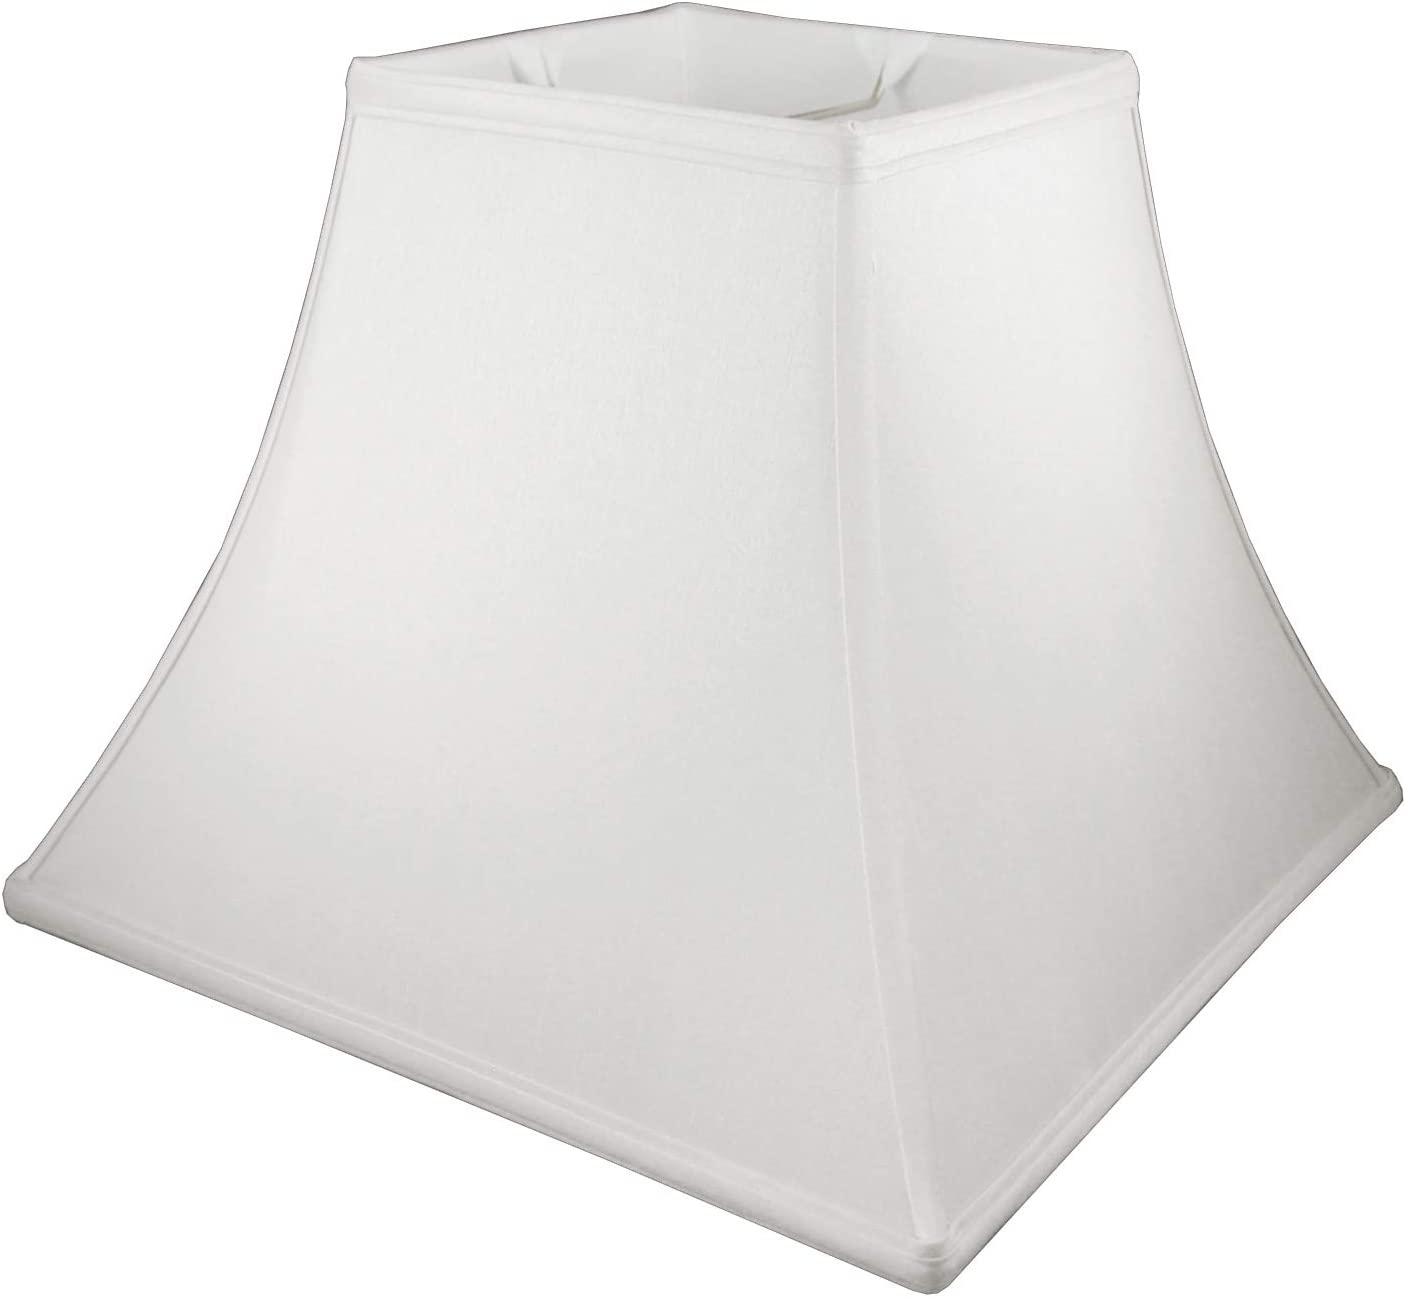 American Pride 8 x 20 x 12 Square Soft Shantung Tailored Lampshade, Off-white